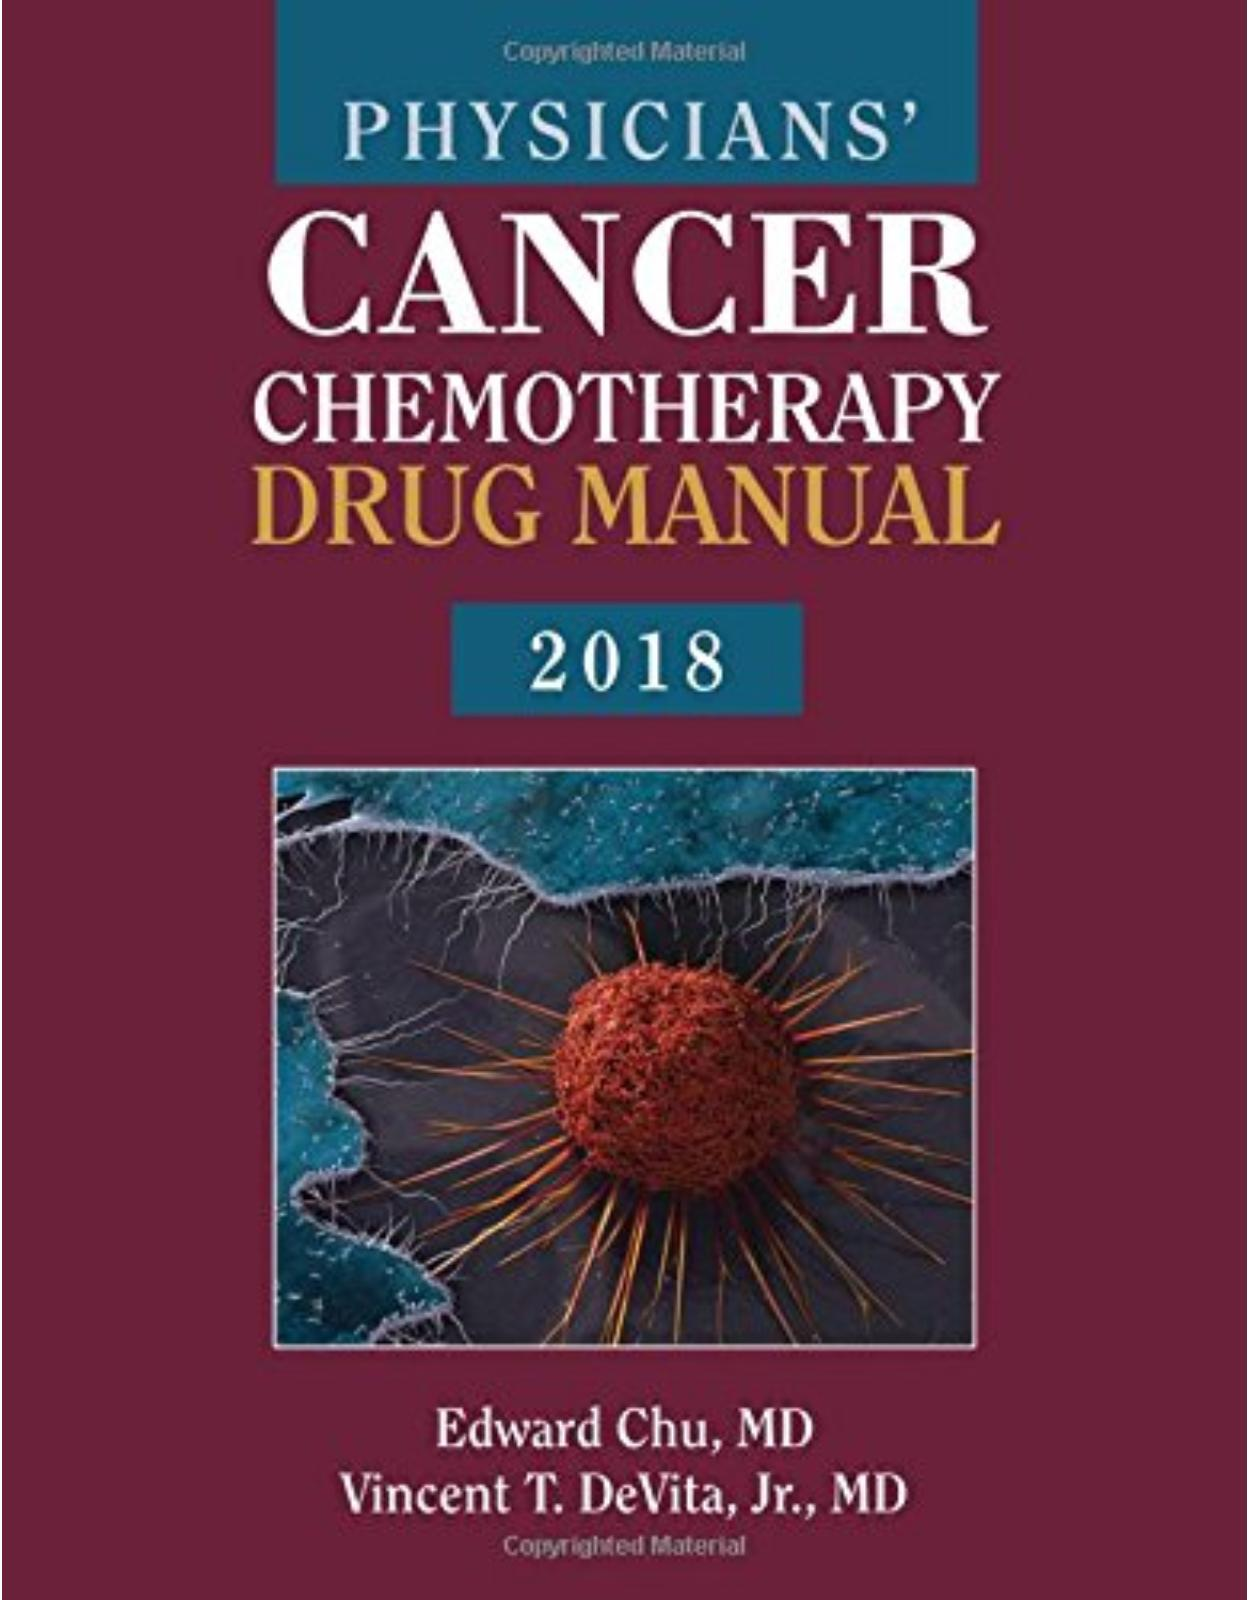 Physicians' Cancer Chemotherapy Drug Manual 2018